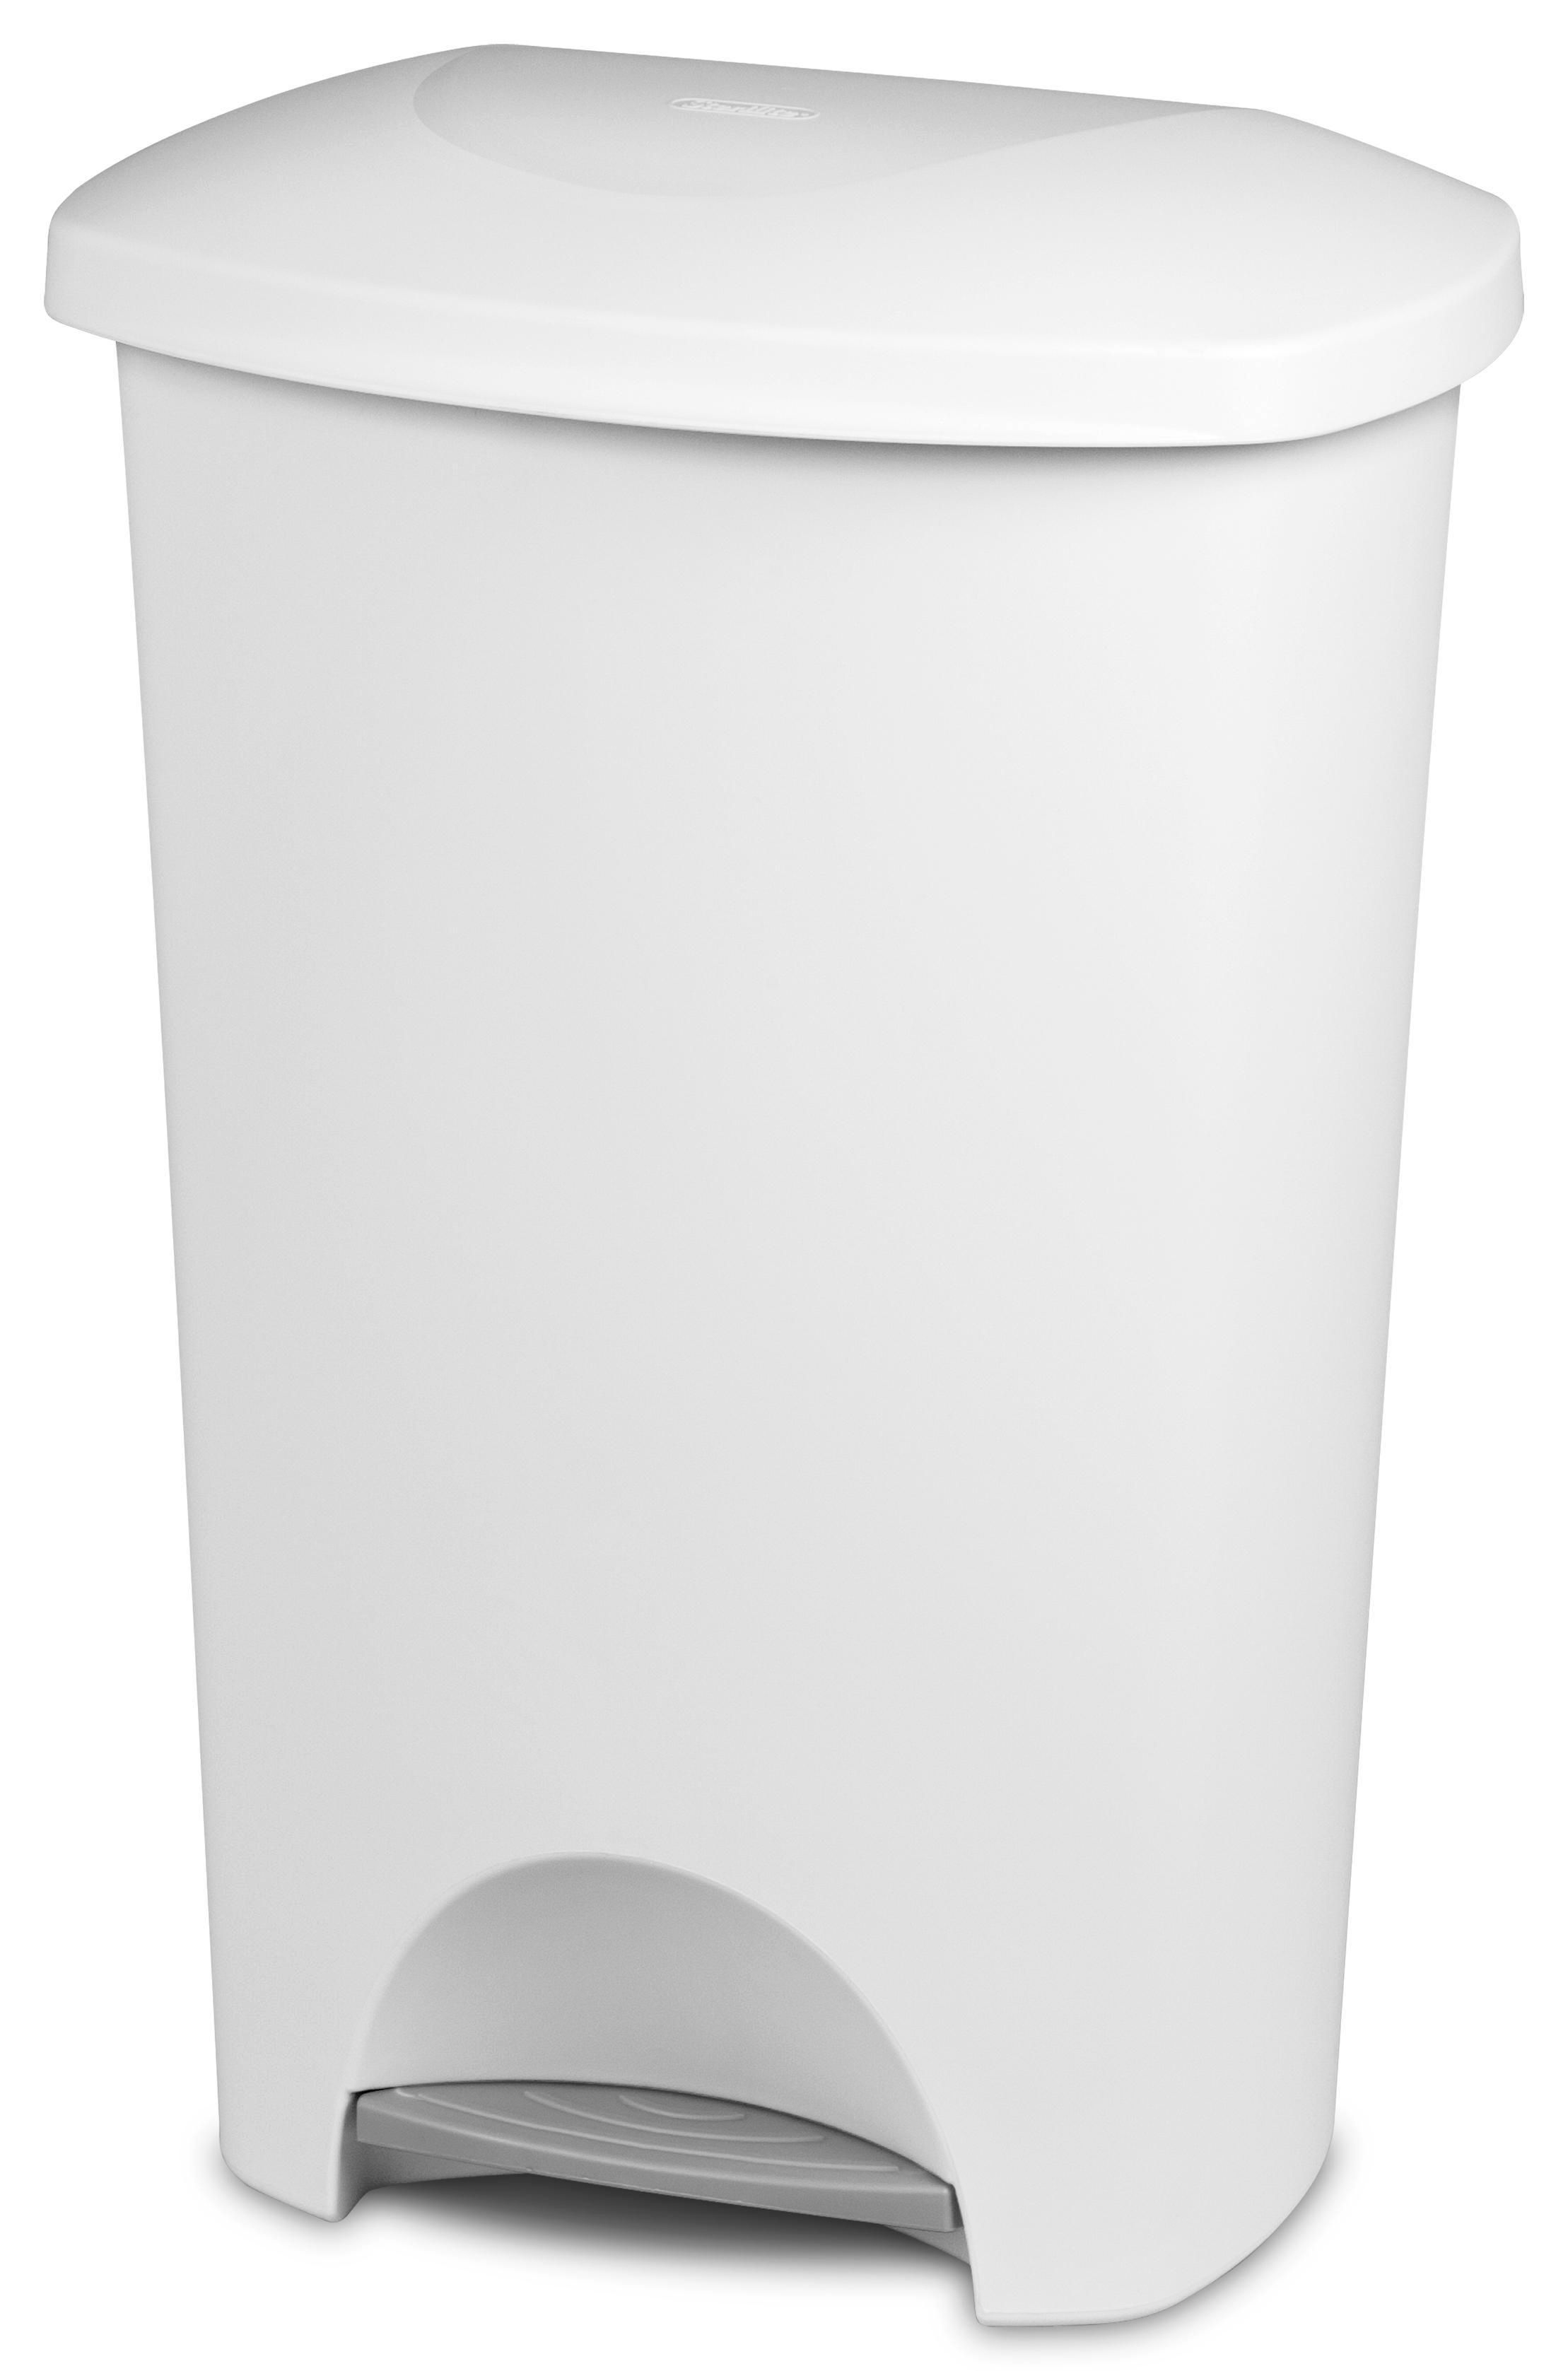 Sterilite 42 Liter Step-On White Wastebasket | Walmart Canada